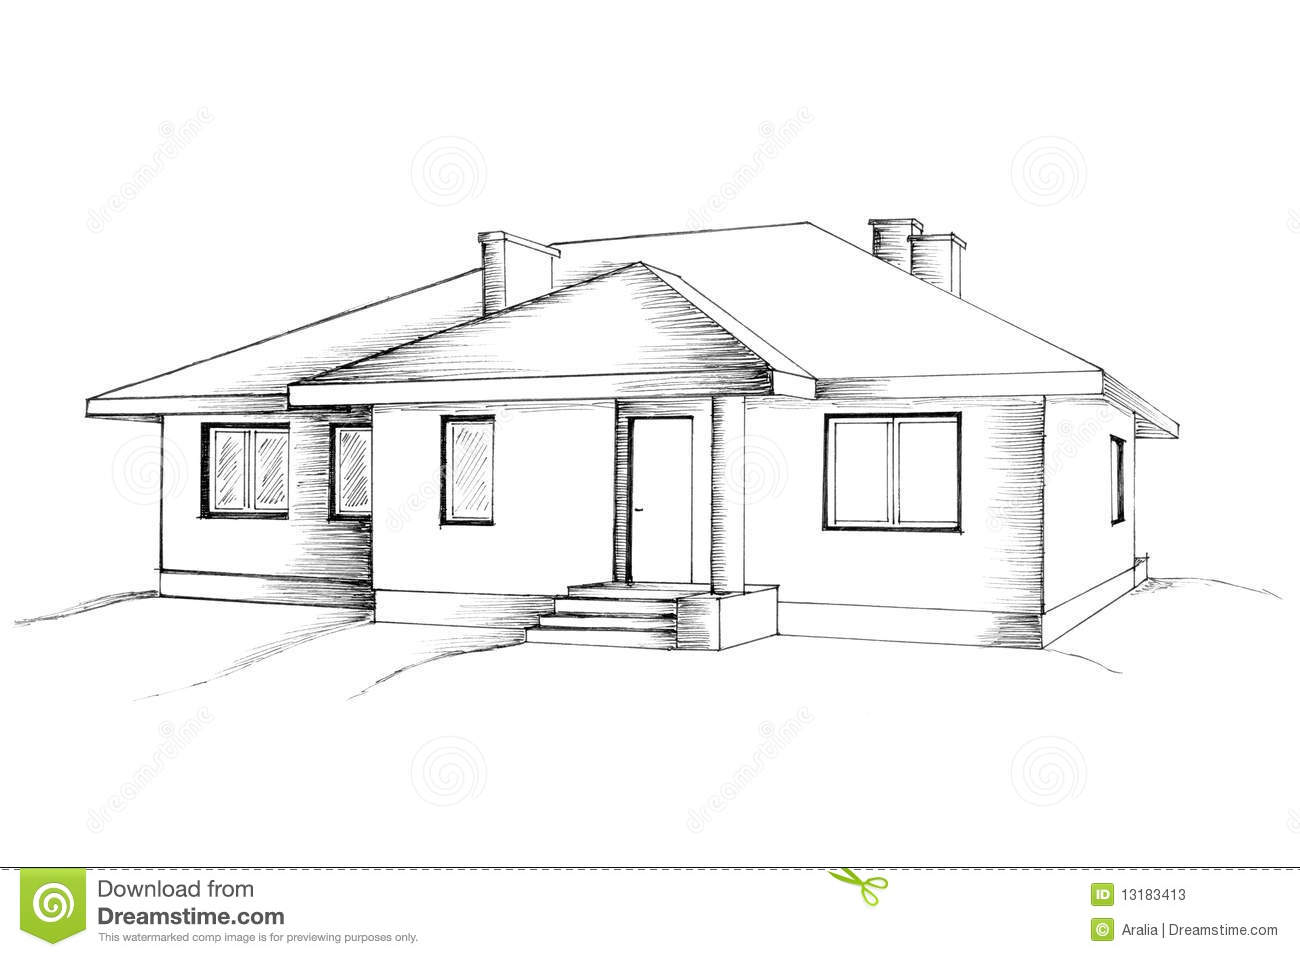 Line Drawing House Image : Manual drawing of the house stock photos image